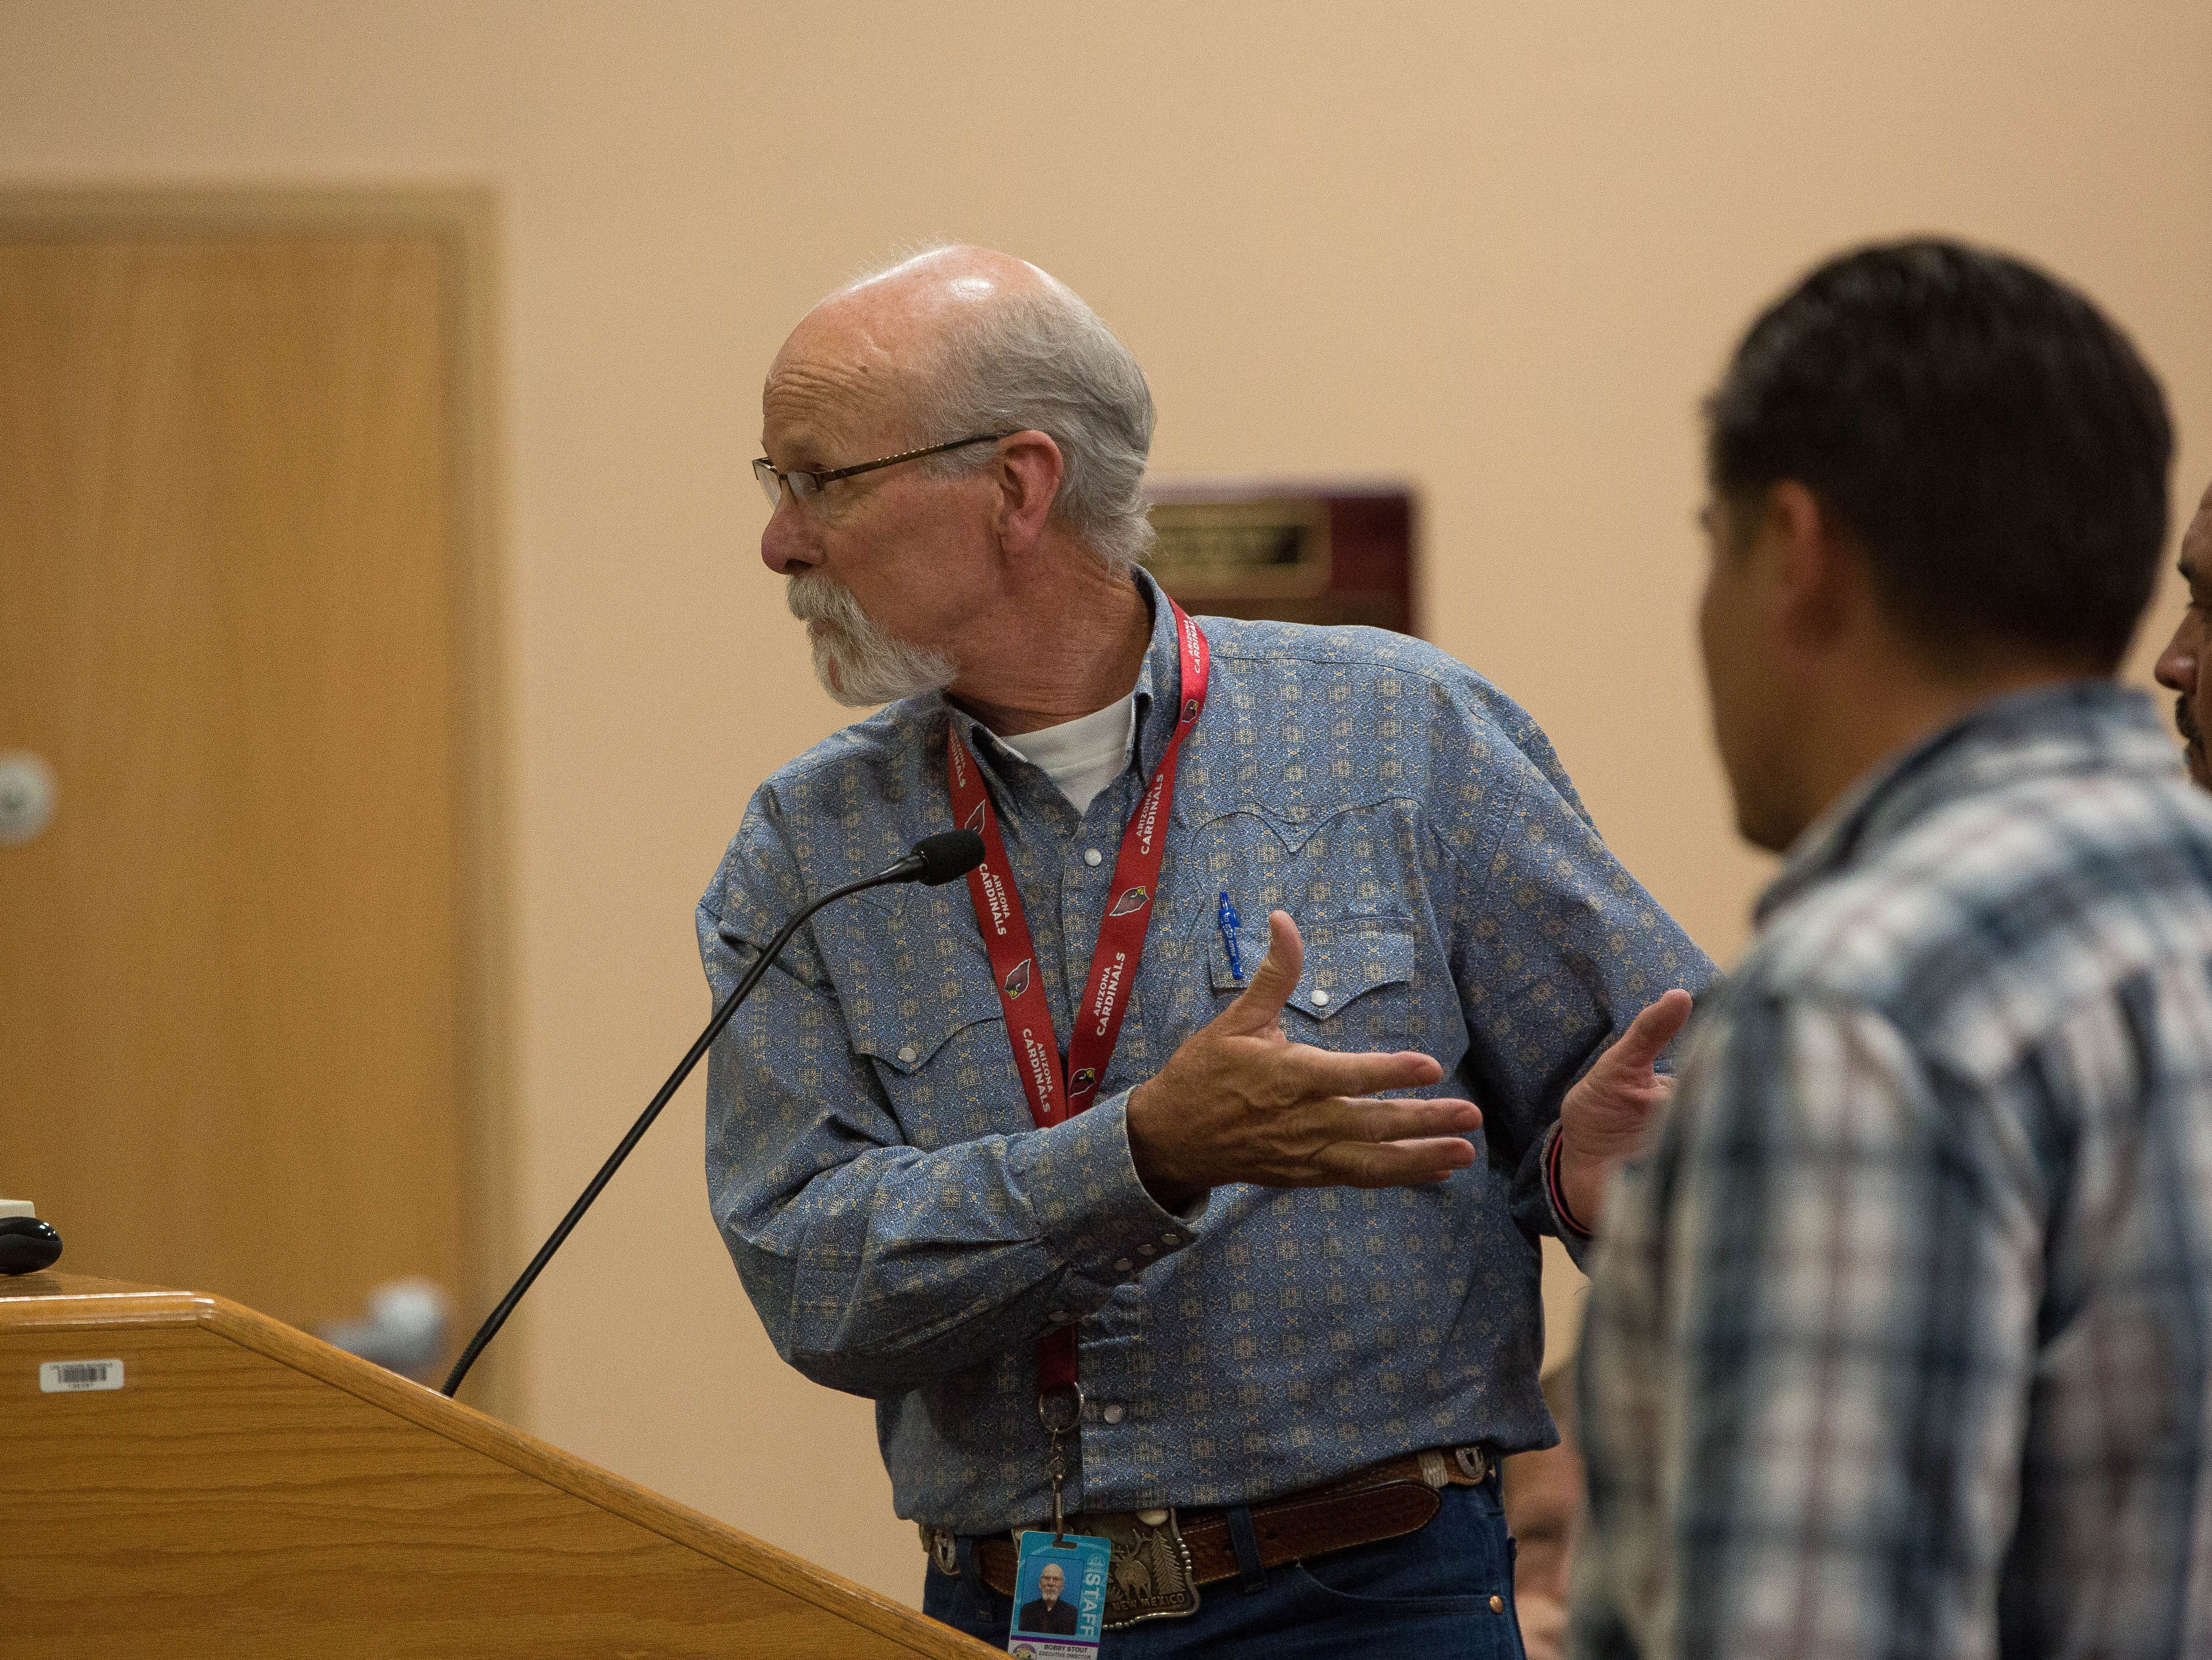 Bobby Stout, executive director of operations for the Las Cruces Public Schools, discussing the work needed and what has been done so far at Columbia Elementary School, during a presentation to the School board about the mold problem at the school. Tuesday September 18, 2018.